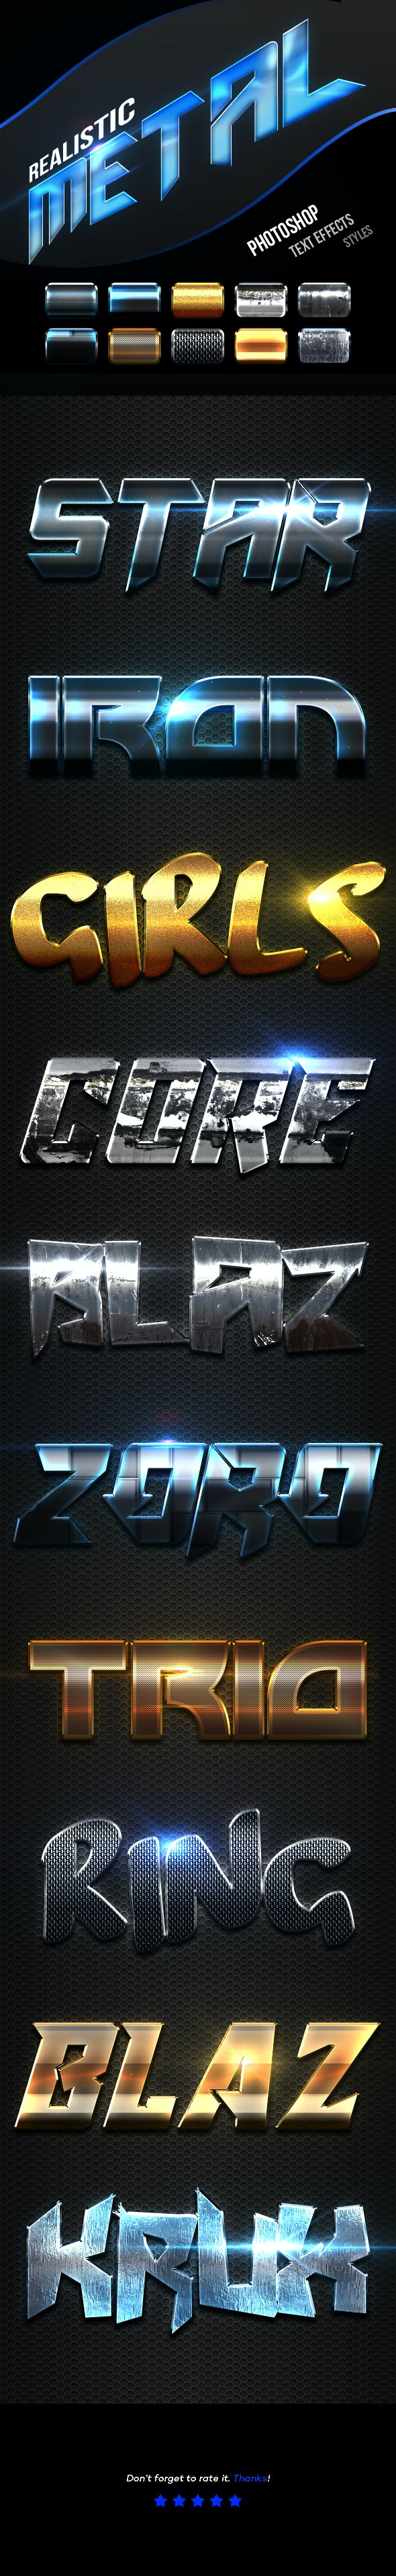 Realistic Metal Text Effects Vol.2 - Text Effects Actions